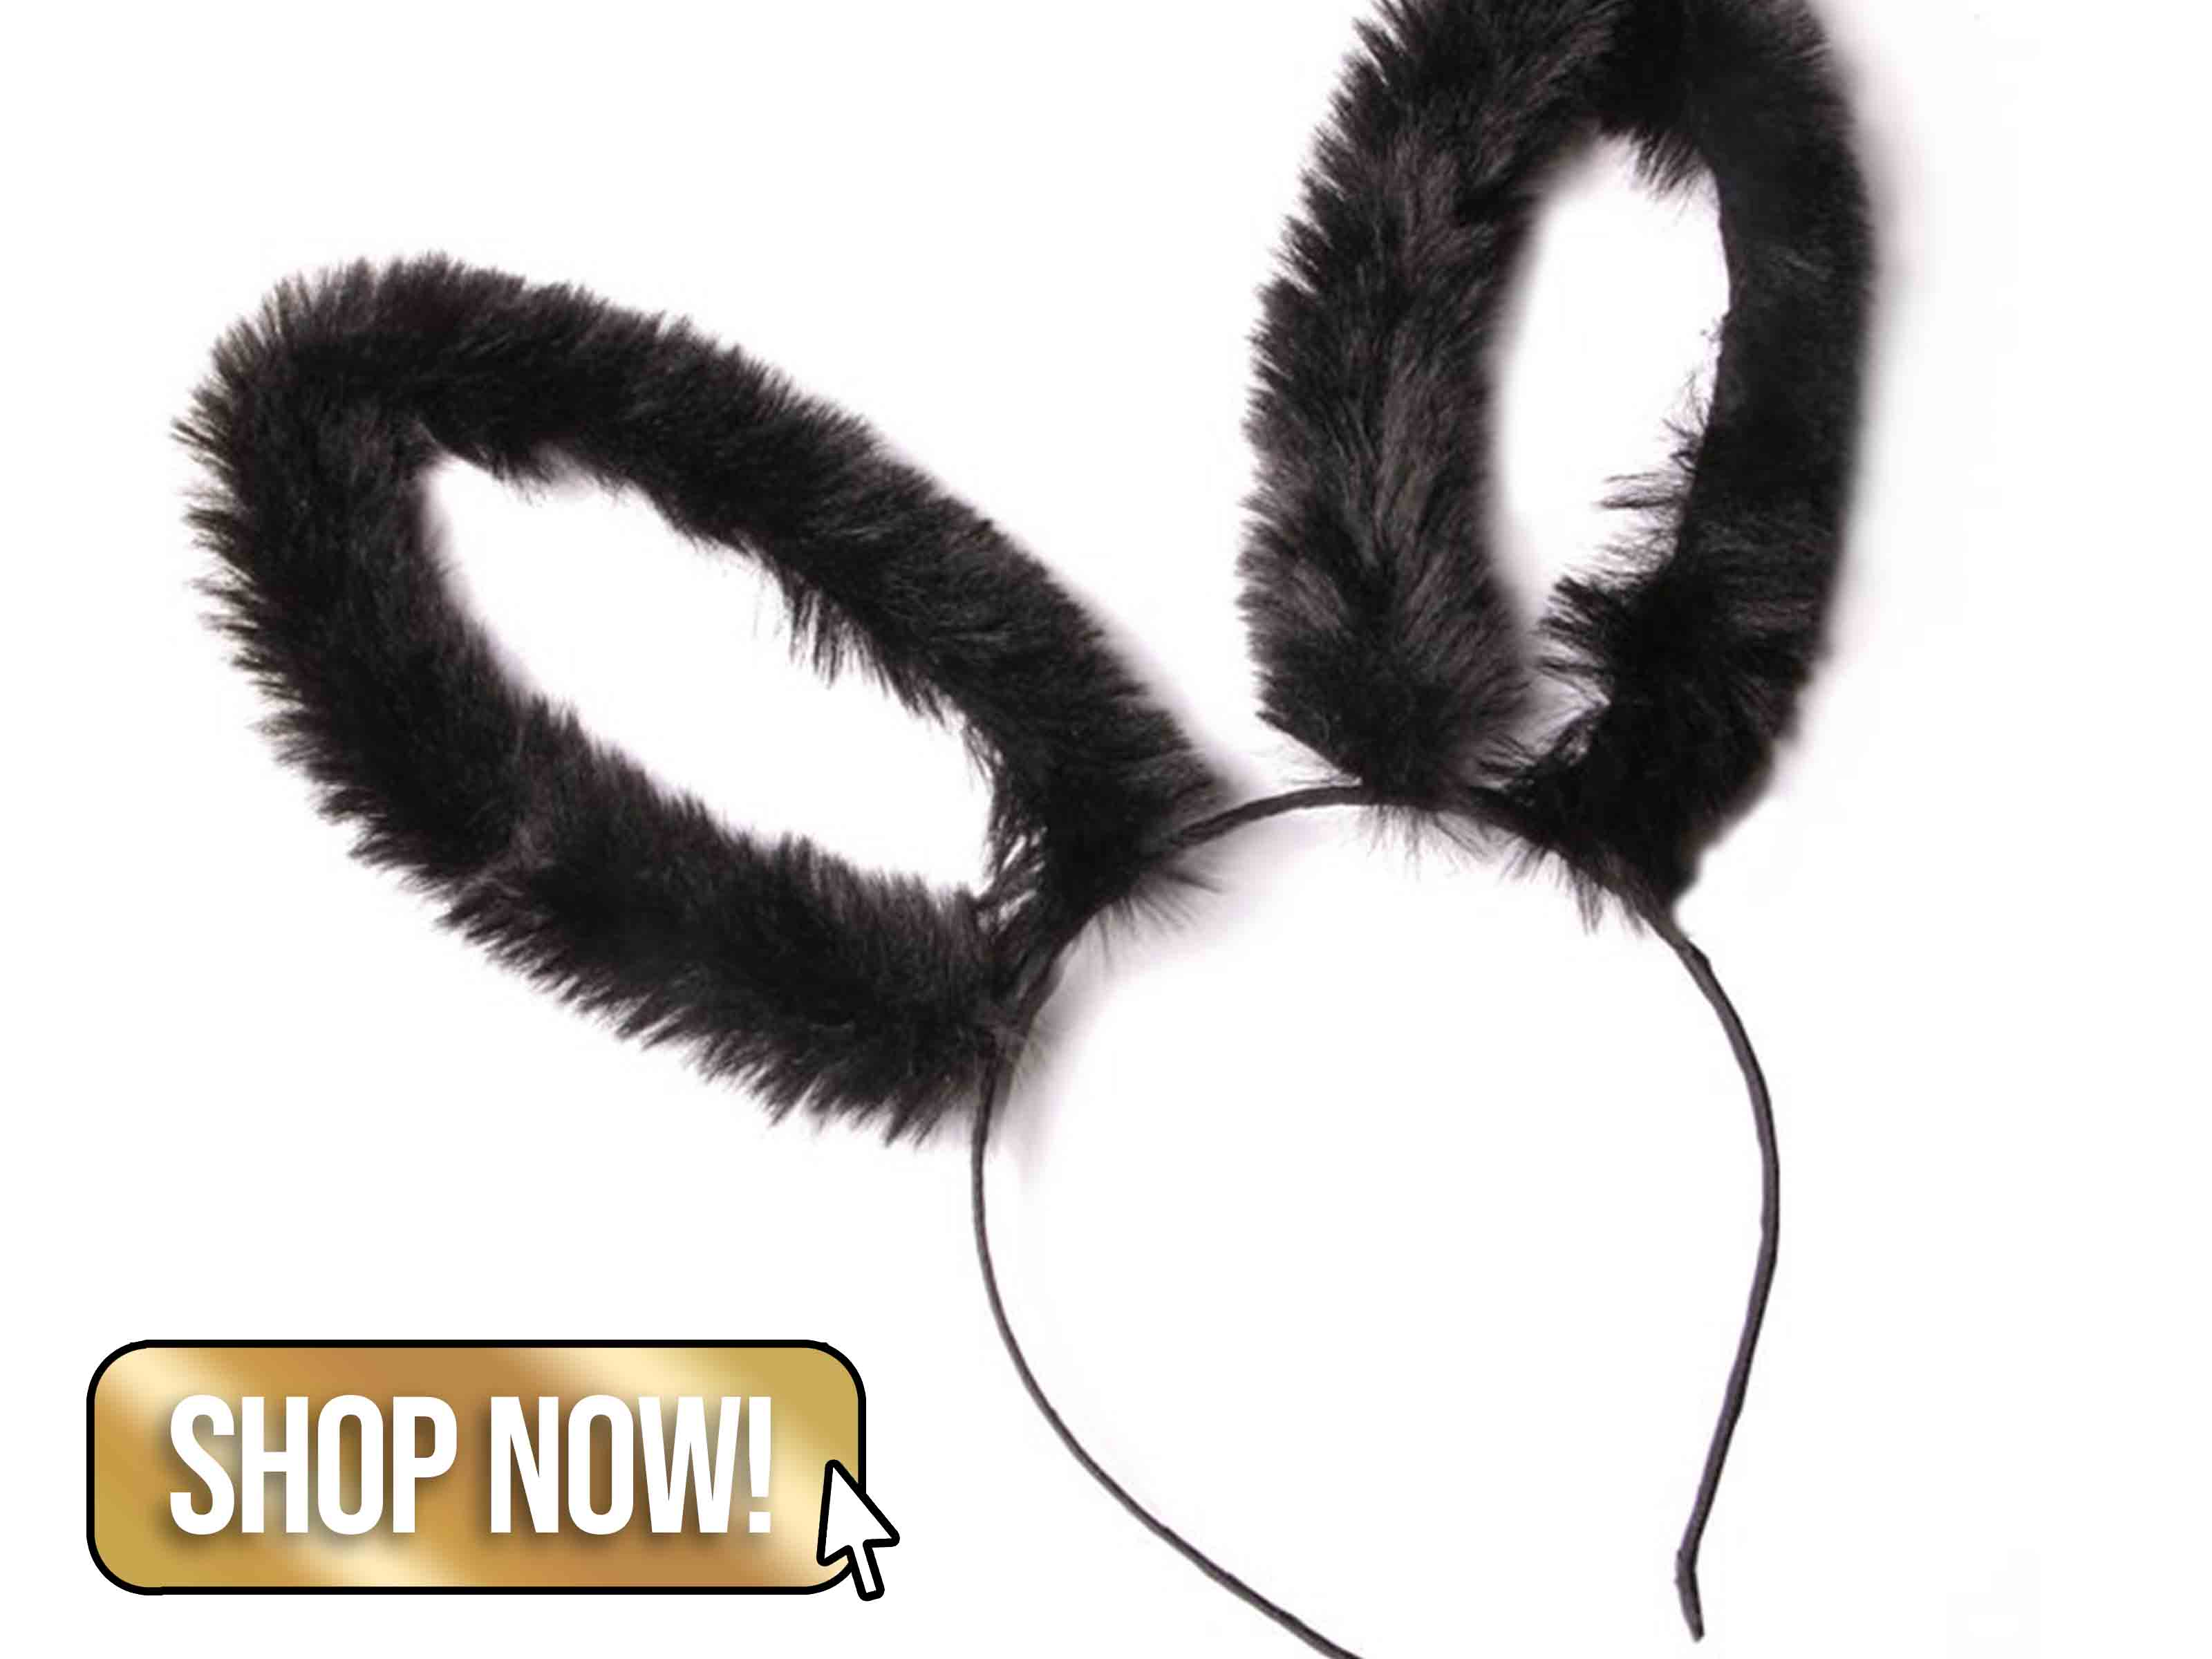 Black Feather Bunny Ears